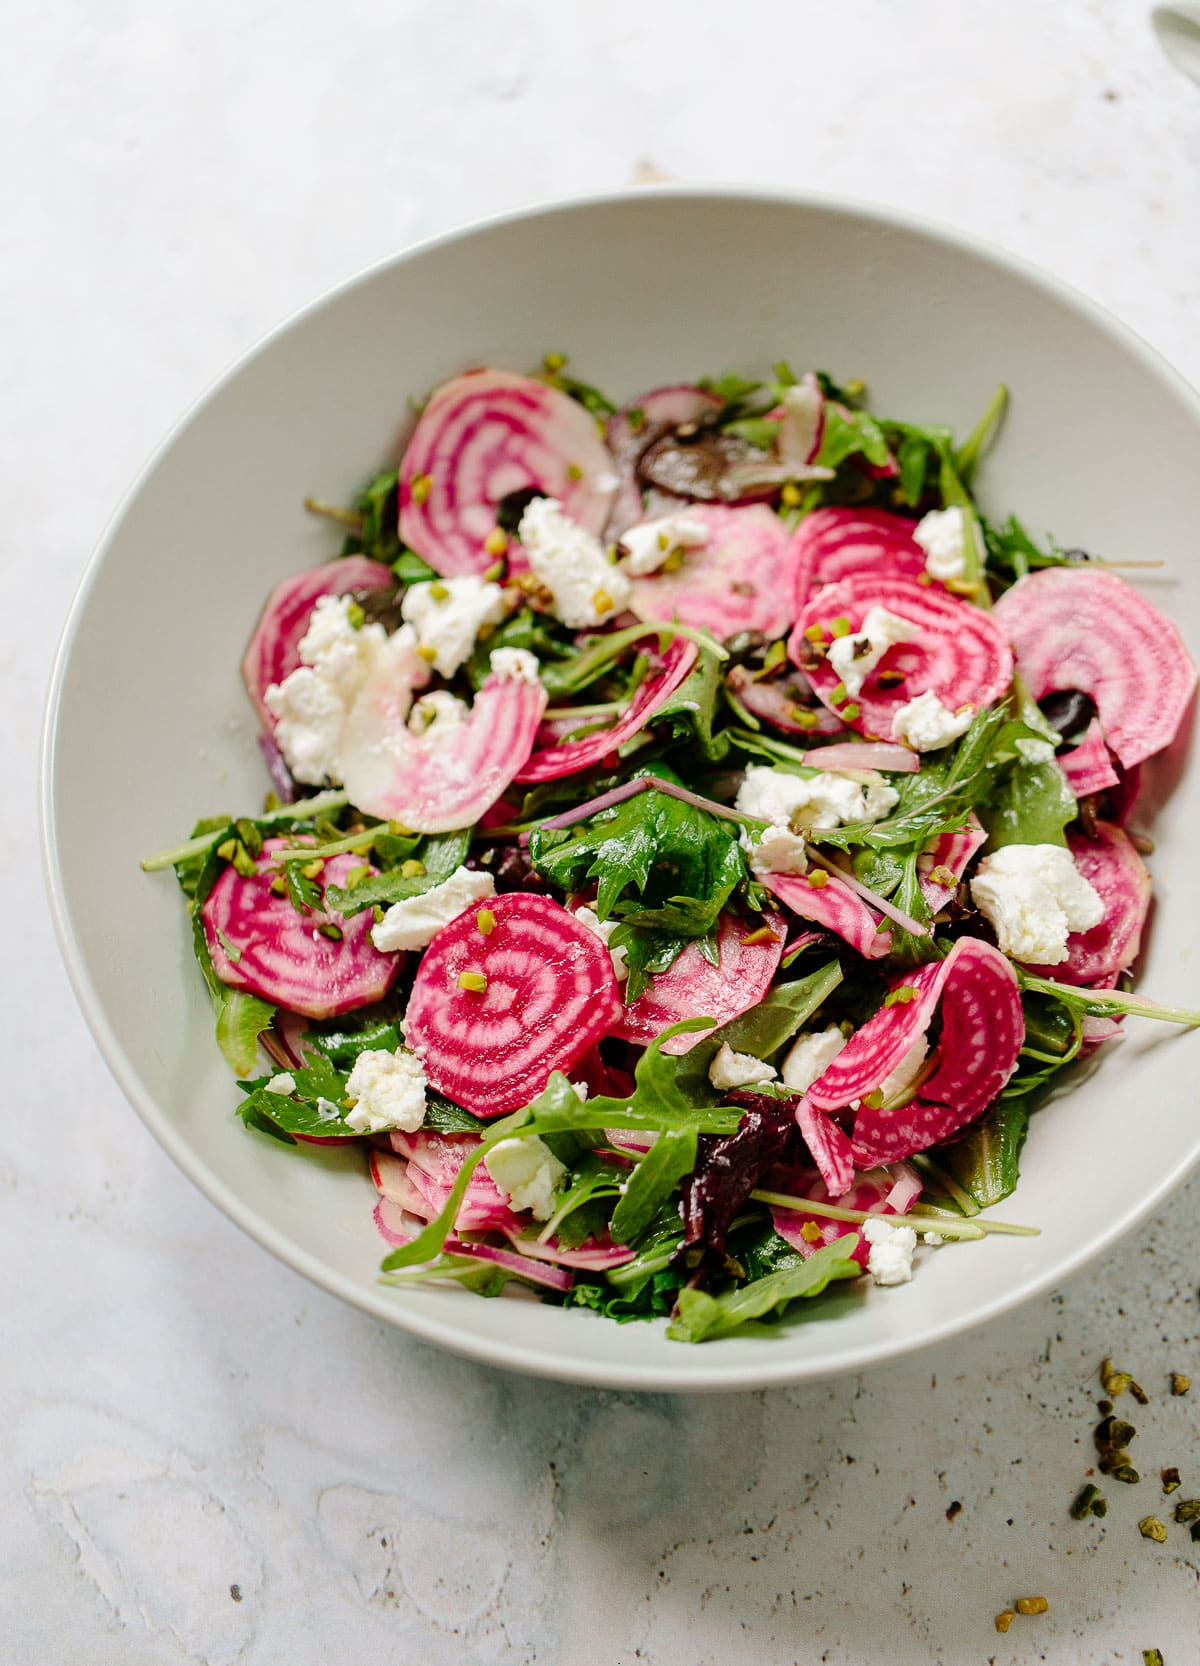 Candy Cane Beet Salad with Goat Cheese and Pistachios